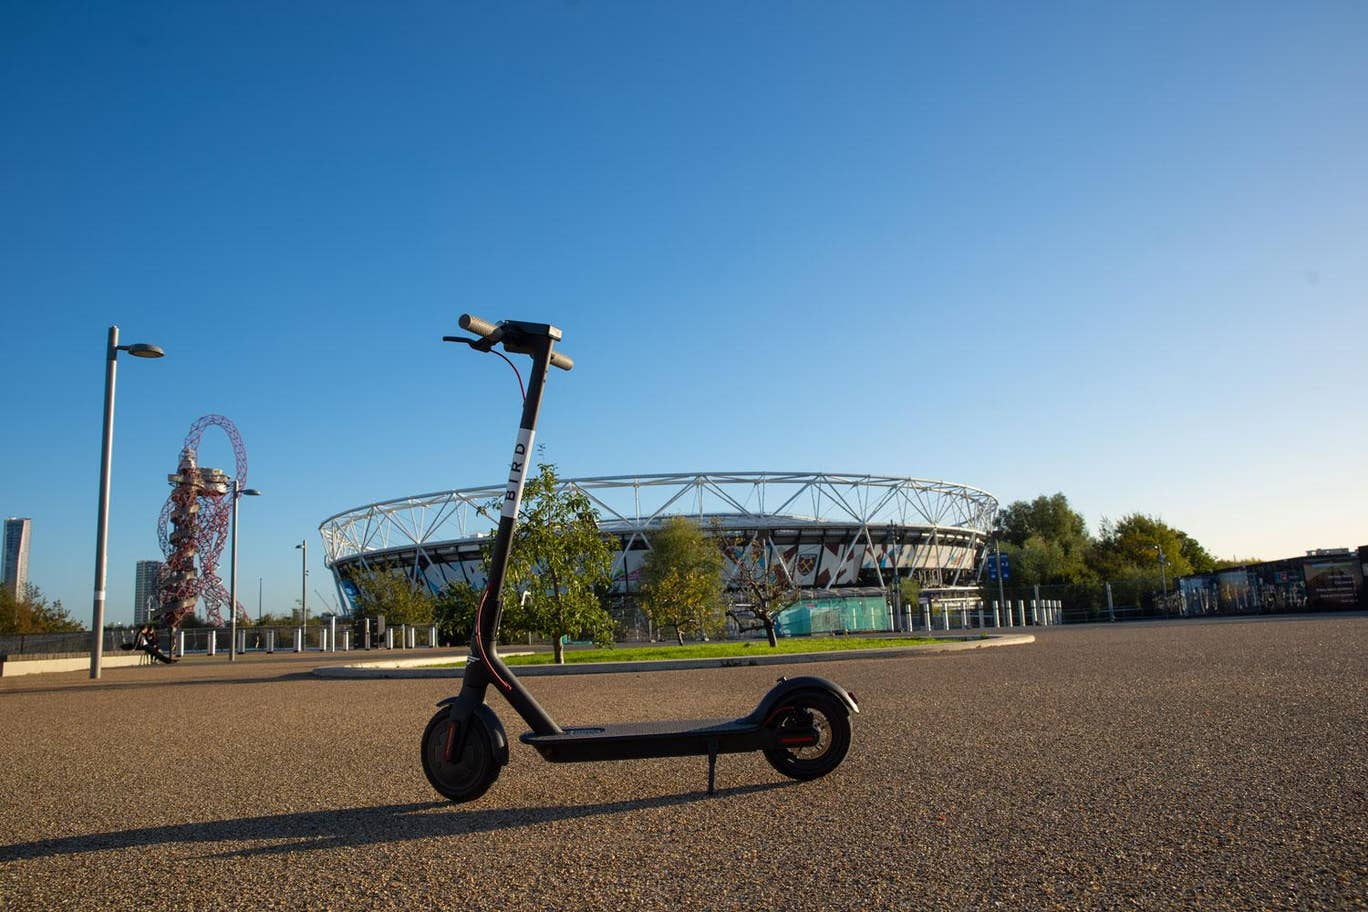 UK electric scooter sales increase, but regulations lag behind